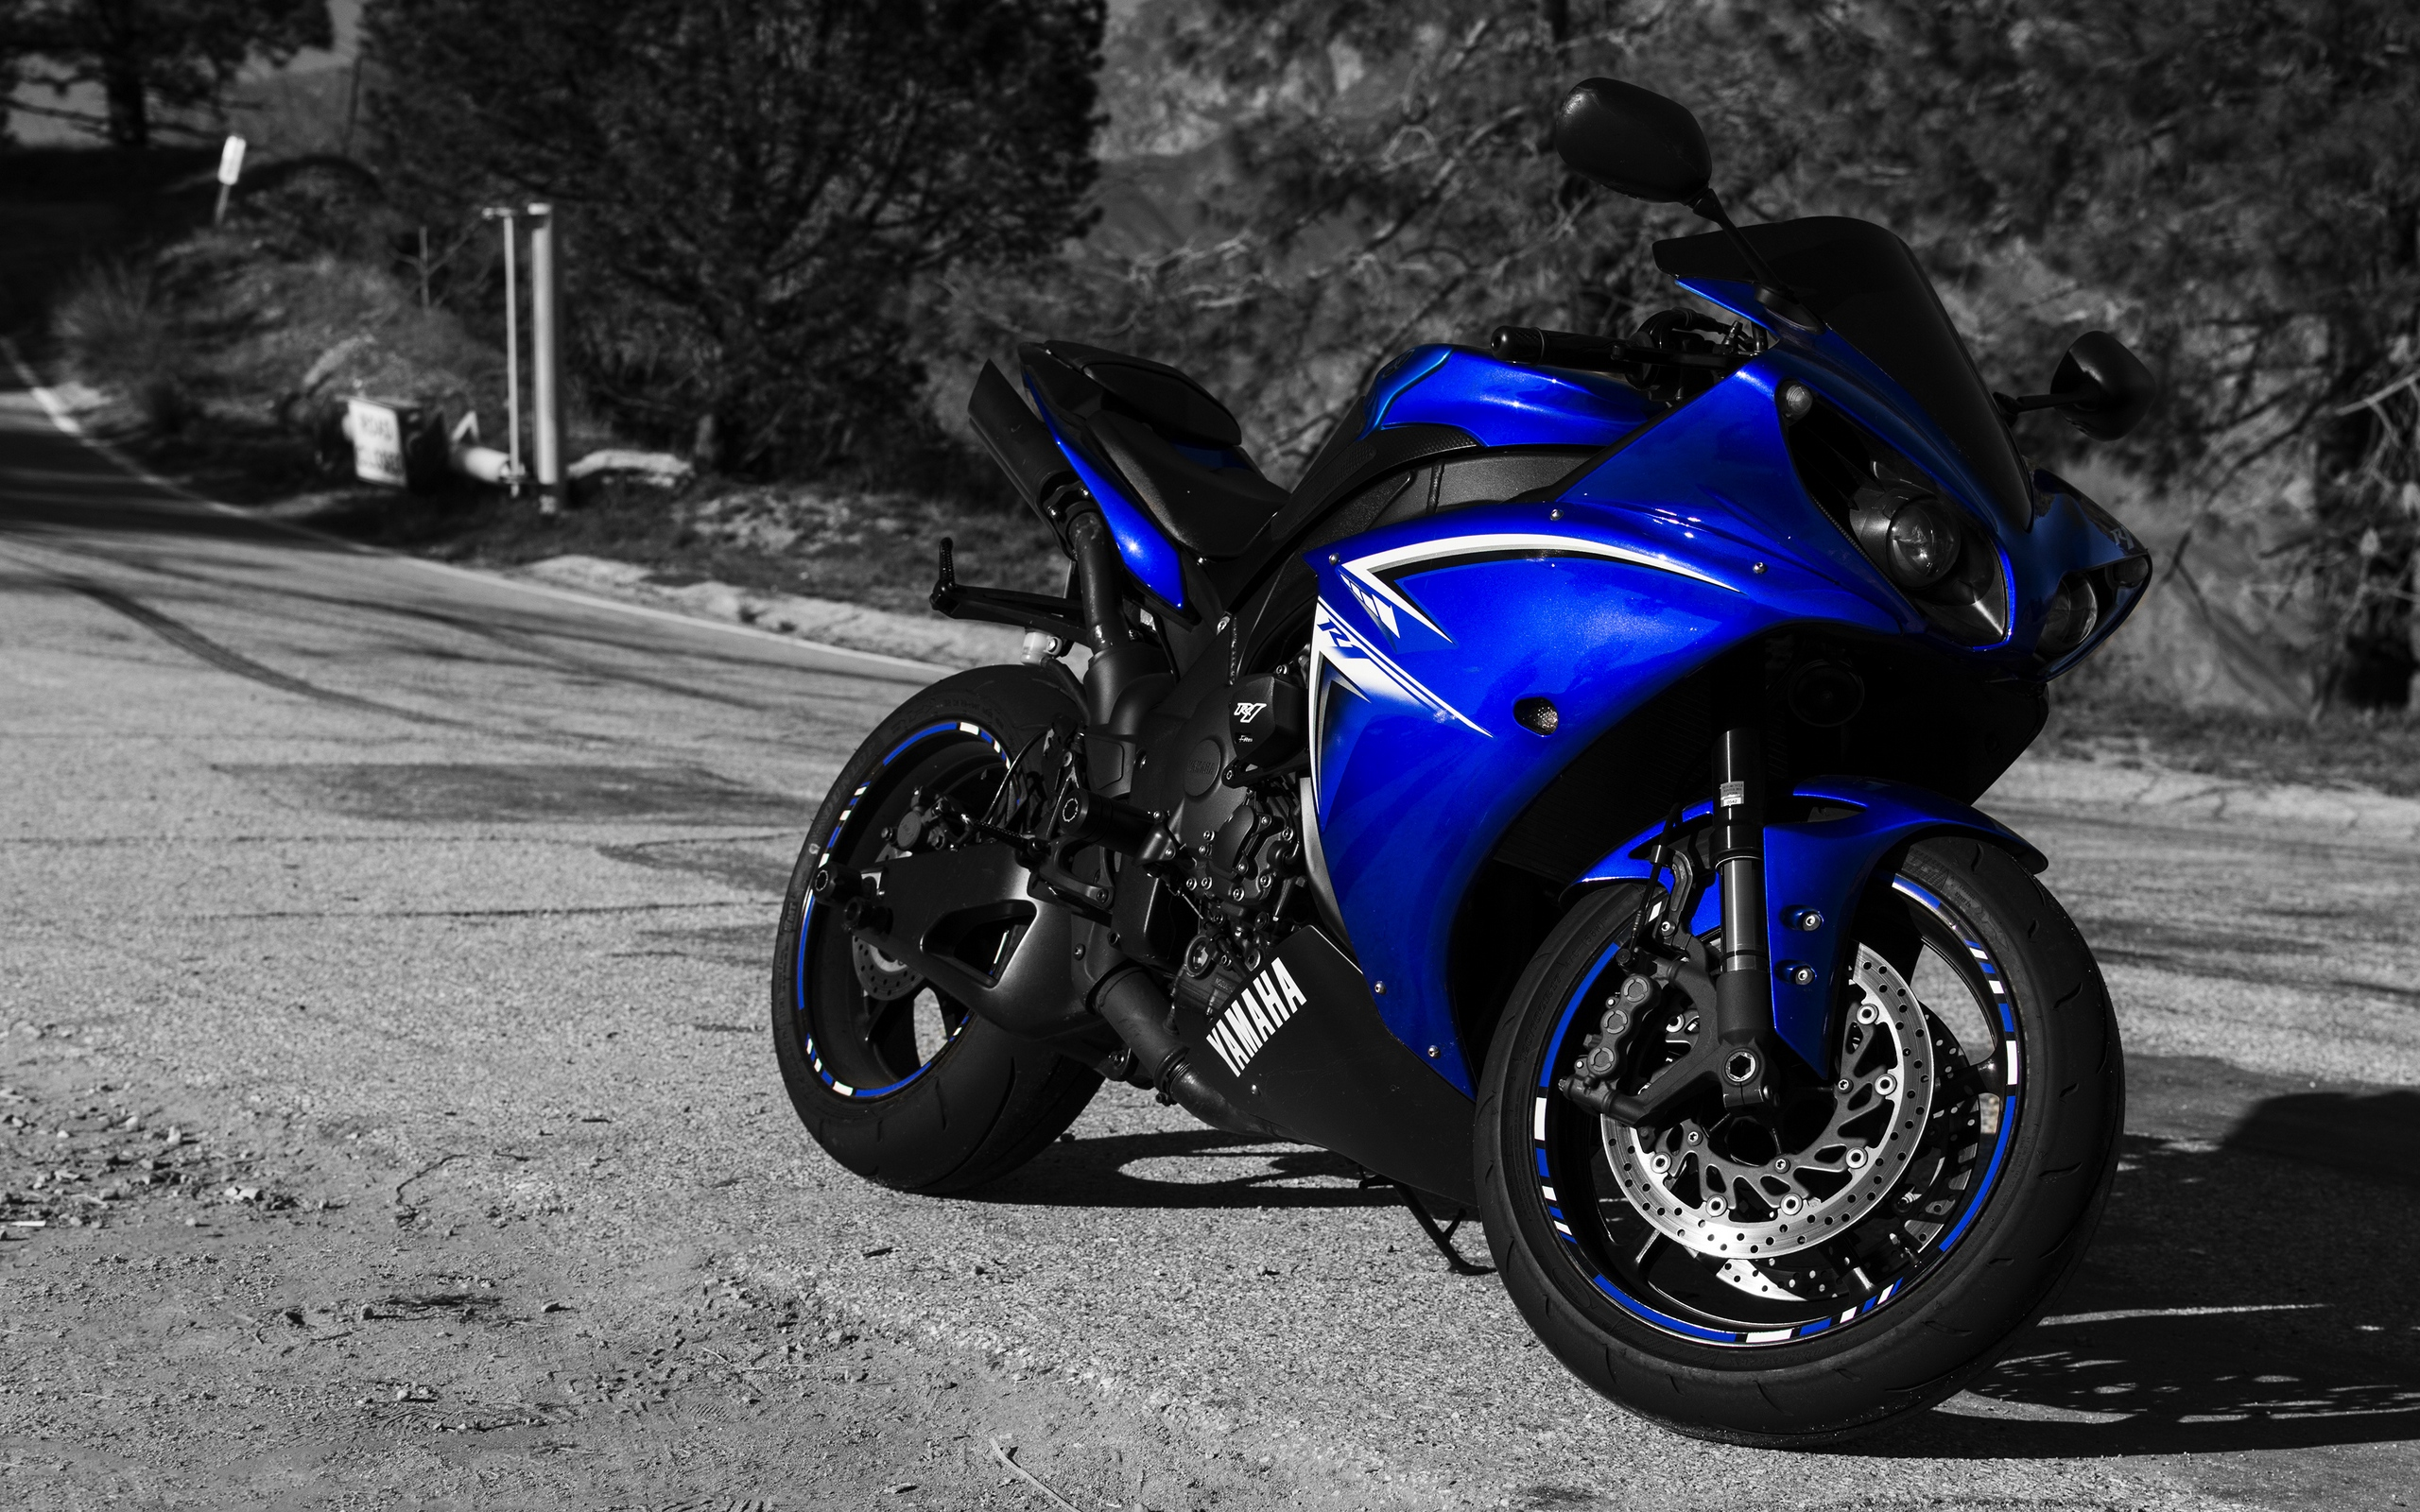 Wallpaper of YAMAHA YZF R1 Motorcycle Sportbike background HD 2560x1600